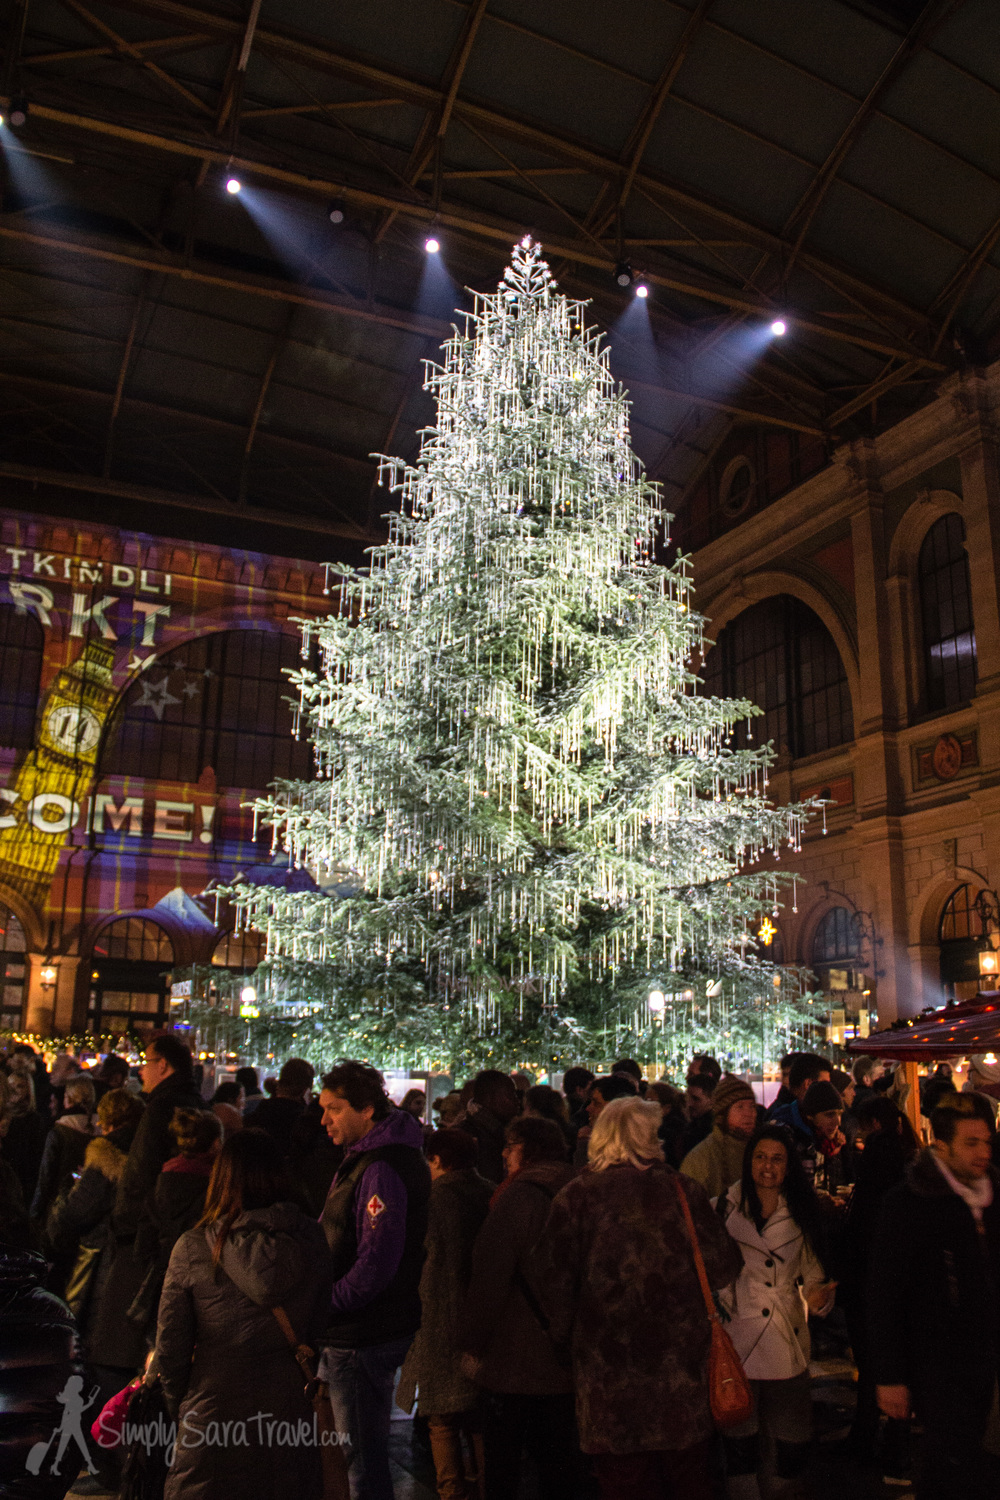 ...to this, a Christmas market in Zurich with a magnificent tree decked out in Swarovski crystal ornaments.